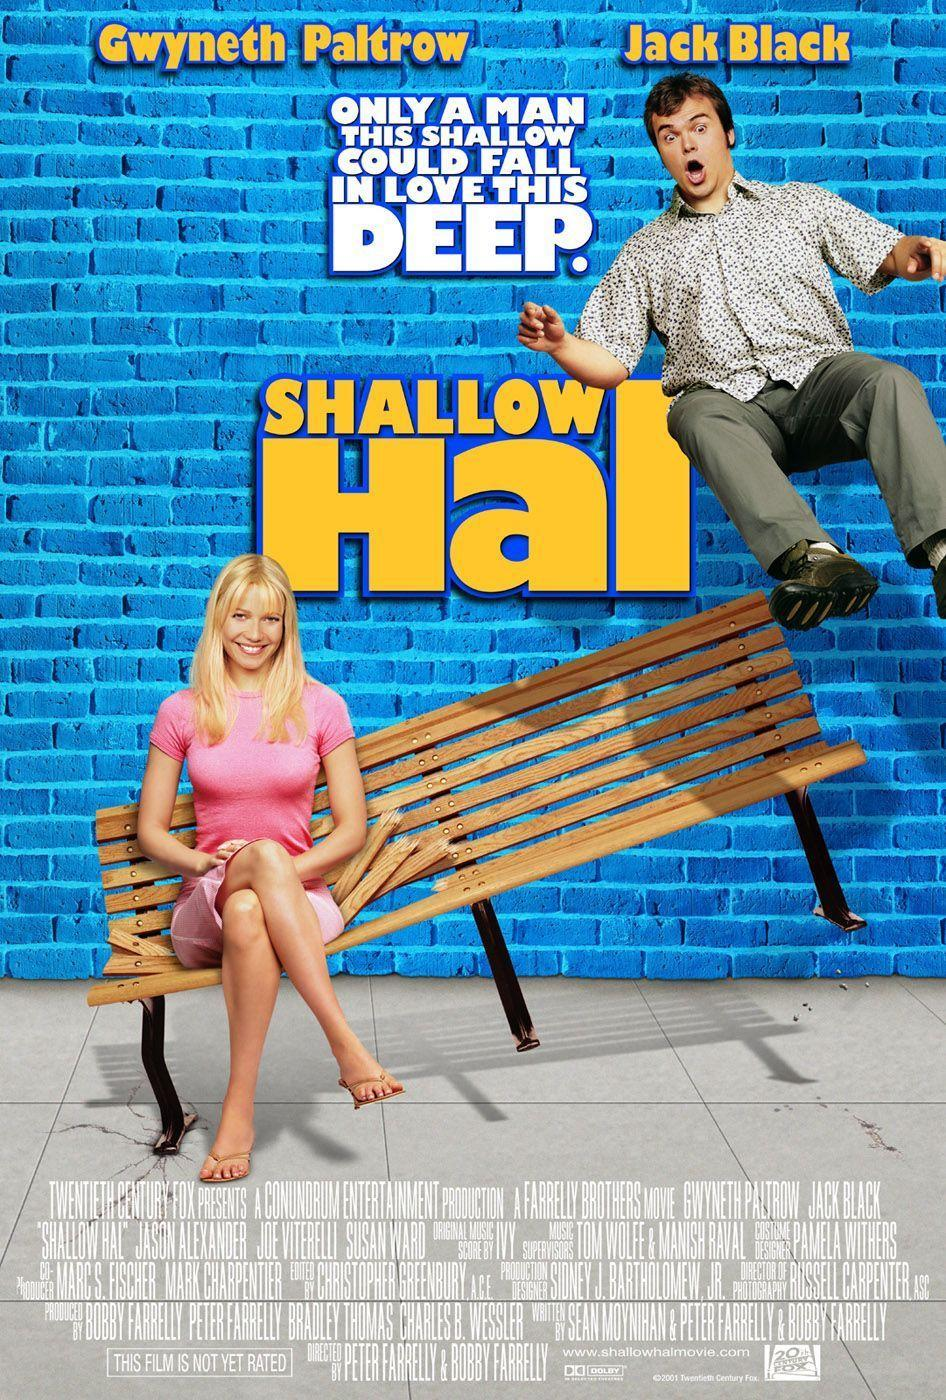 <p>Just as campy as the 2000s, Shallow Hal with peak Jack Black tells a story that goes beyond looks. Hal (Black) gets hypnotized into seeing beauty even in the type of women that he wouldn't consider attractive. Released on November 1, 2001, this one saw a lot of extended success upon its DVD release (remember those?). </p>